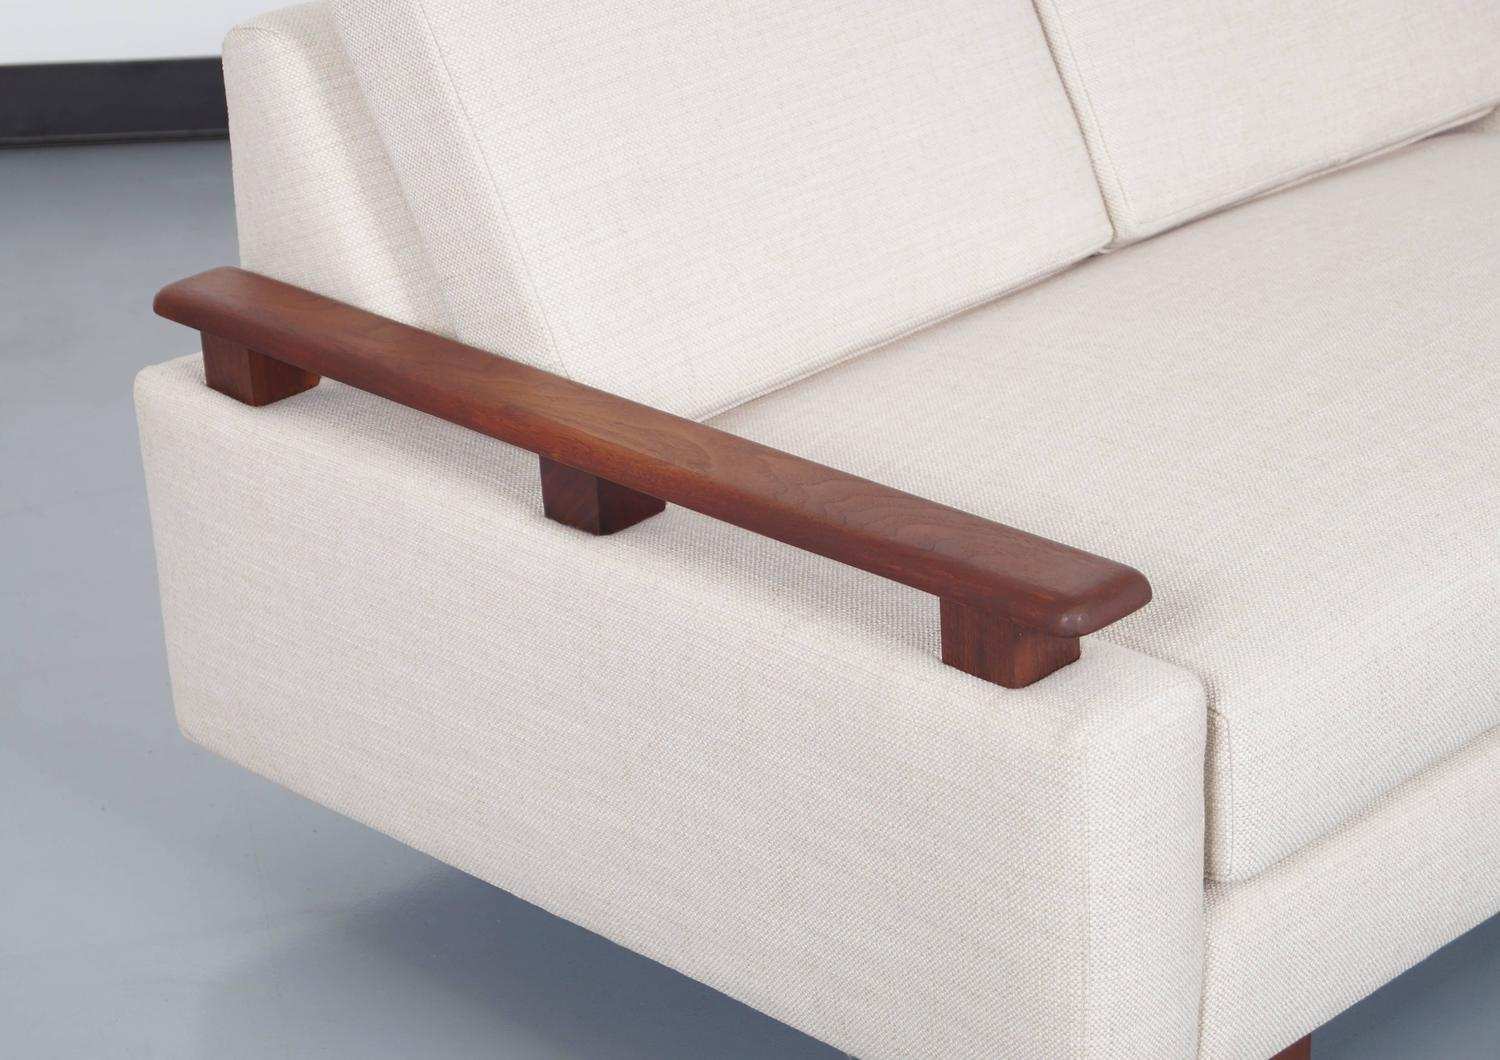 Mid Century Modern Loveseat : Mid-Century Modern Walnut Loveseat For Sale at 1stdibs